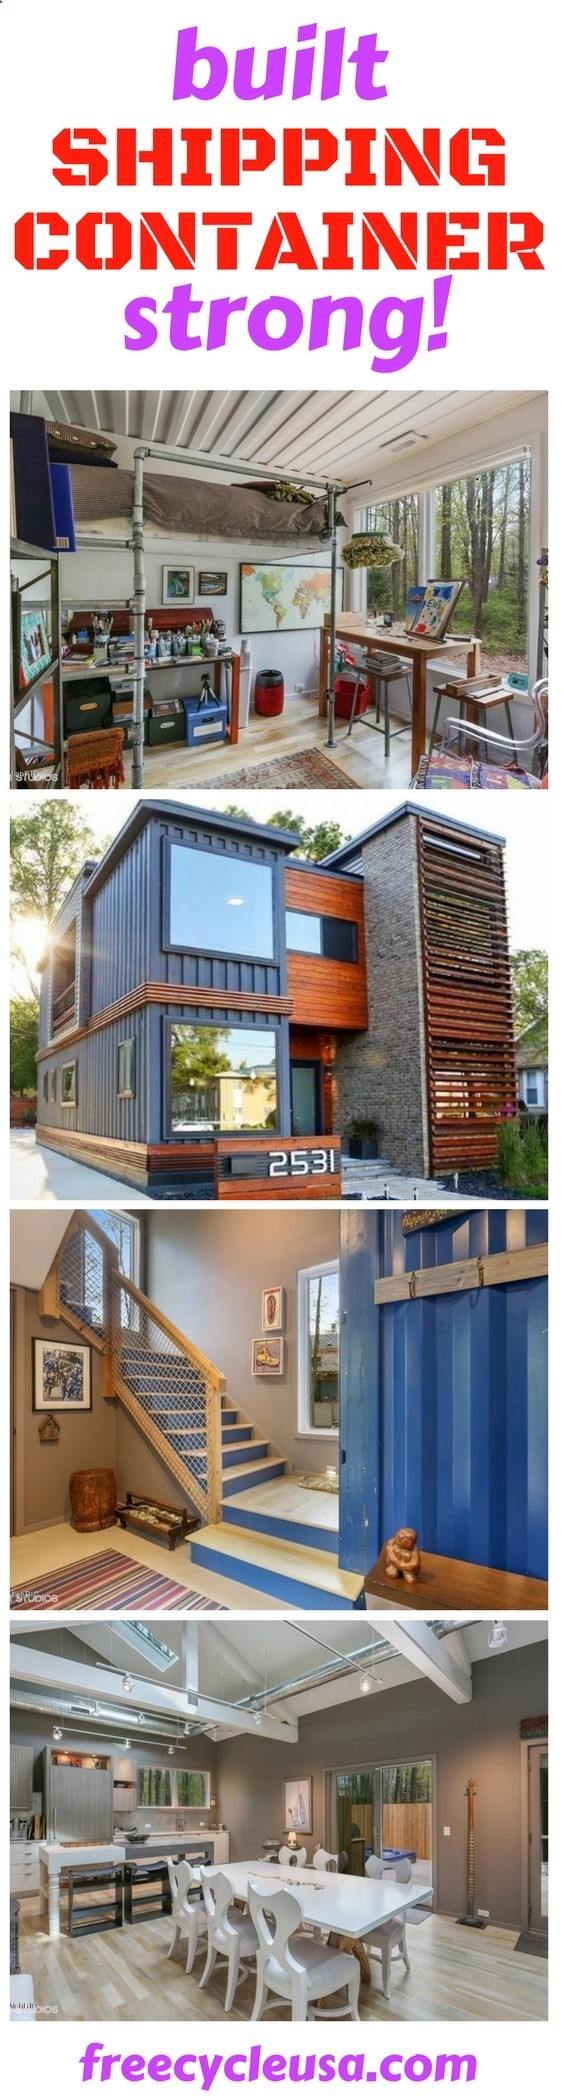 Container house shipping container home guide who else wants